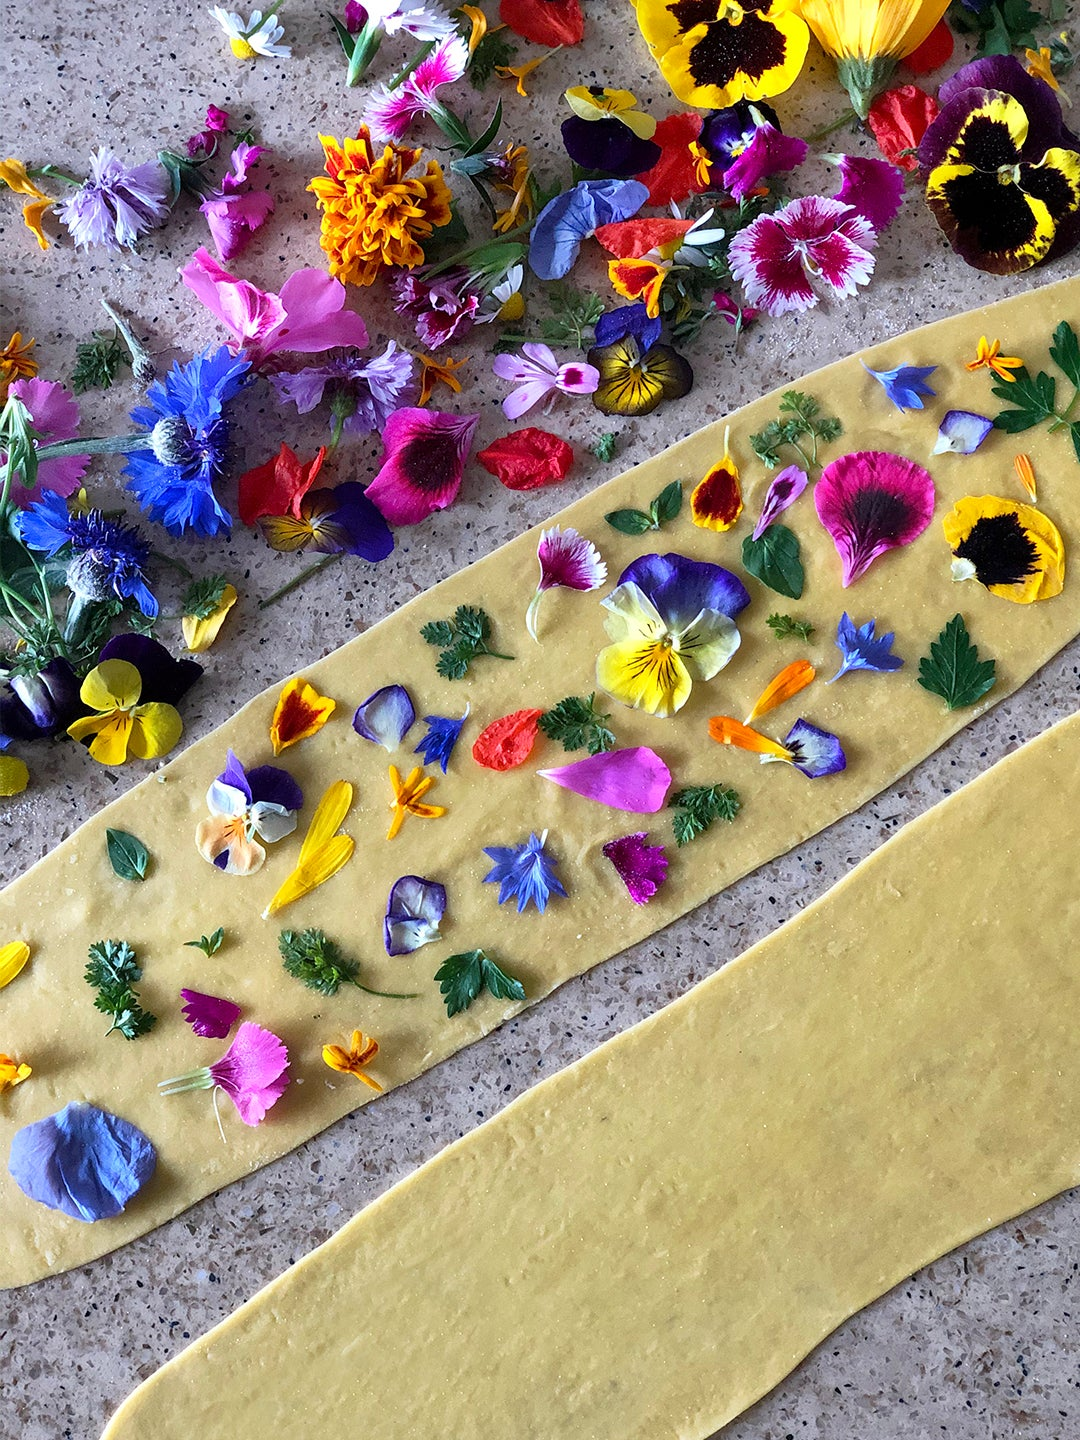 00-FEATURE-floral-homemade-pasta-domino